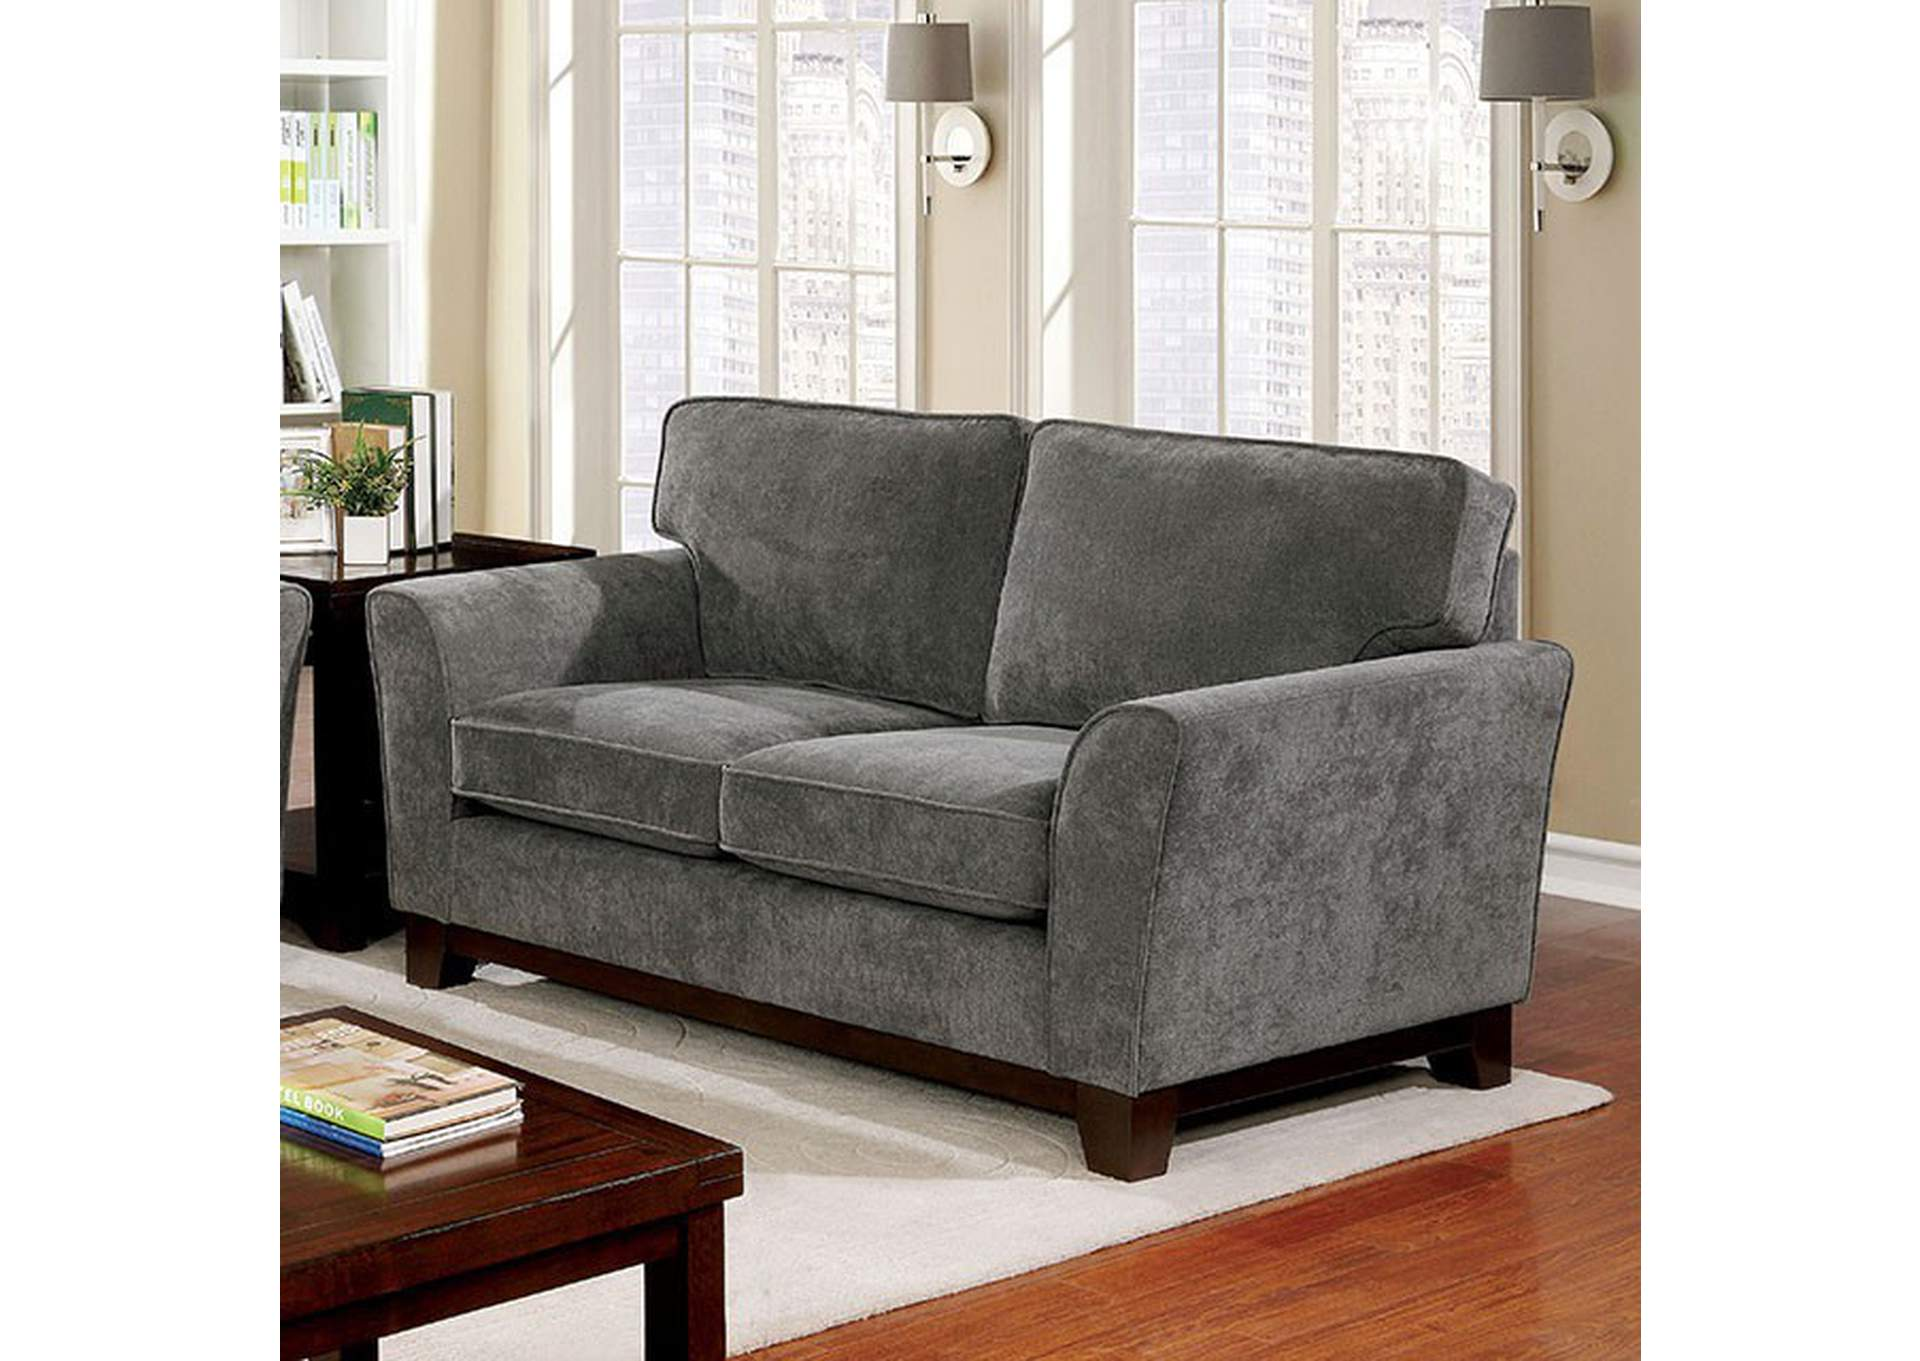 Caldicot Gray Loveseat,Furniture of America